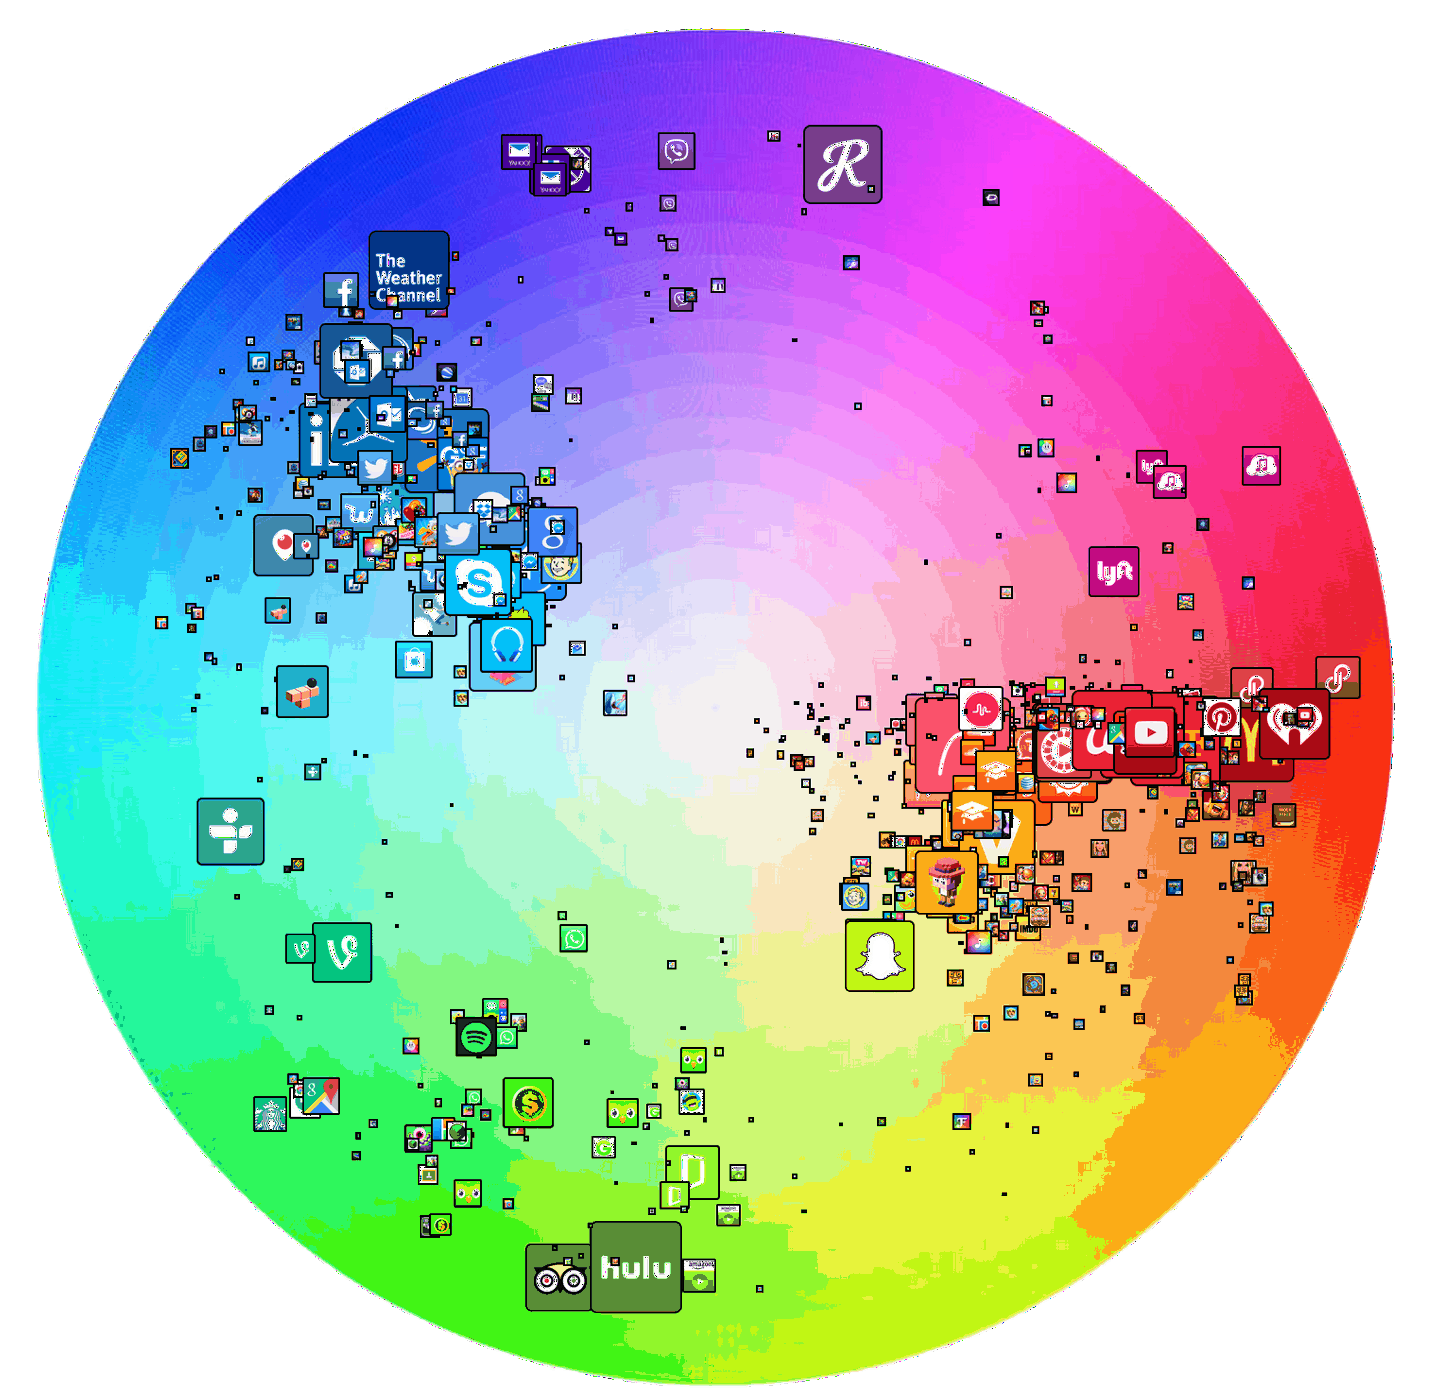 The Top 200 iOS app icons, charted to a color wheel.